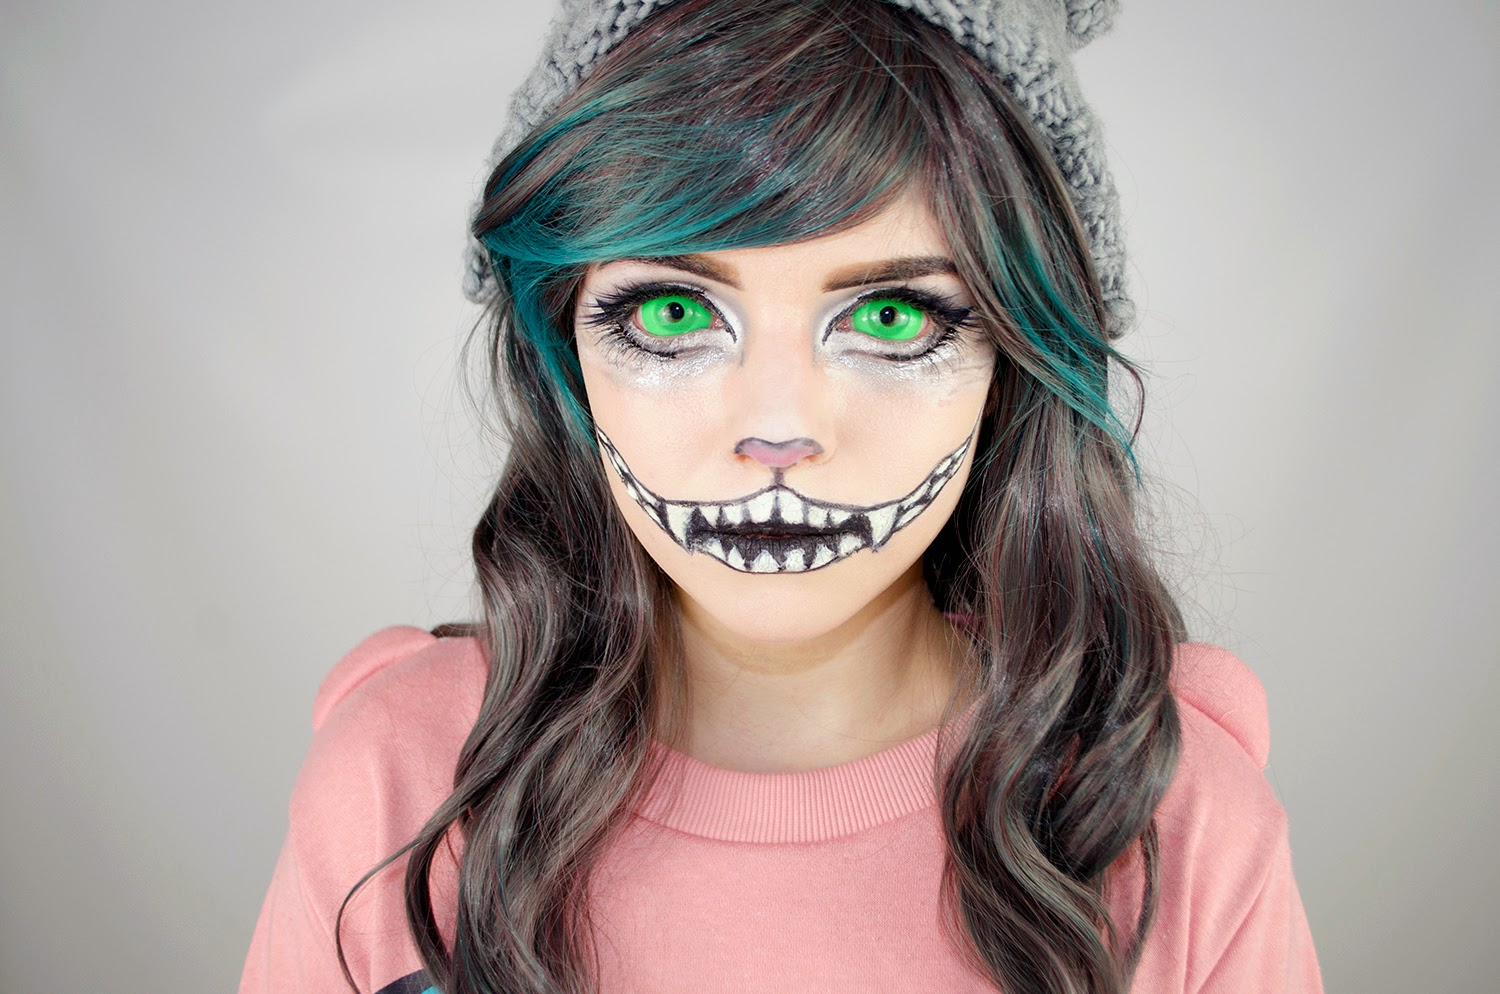 Halloween Special: Cheshire Cat Makeup Tutorial using UV Glow Sclera Lenses & Gradient Gray Wig